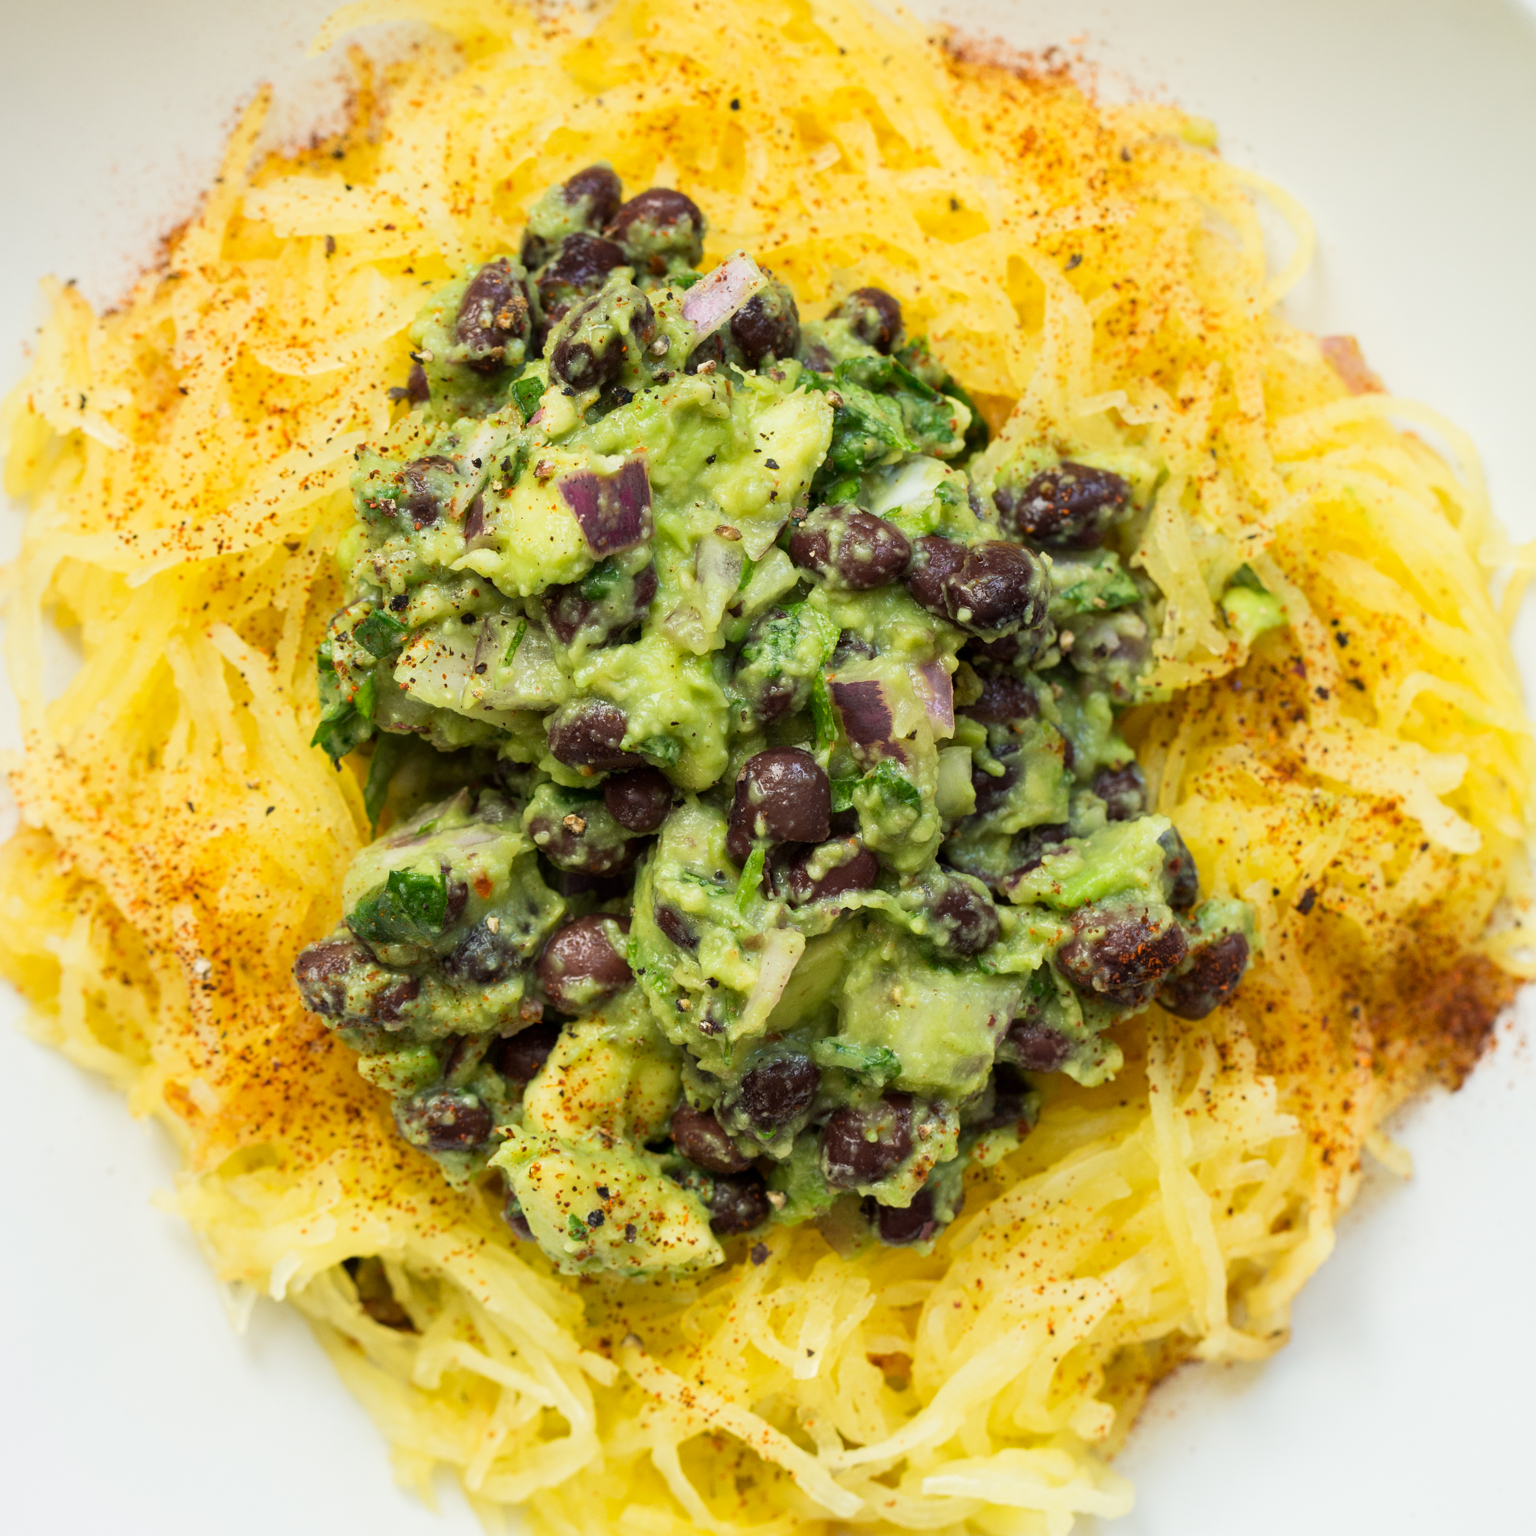 Tex Mex Spaghetti Squash with Black Bean Guacamole — Oh She Glows